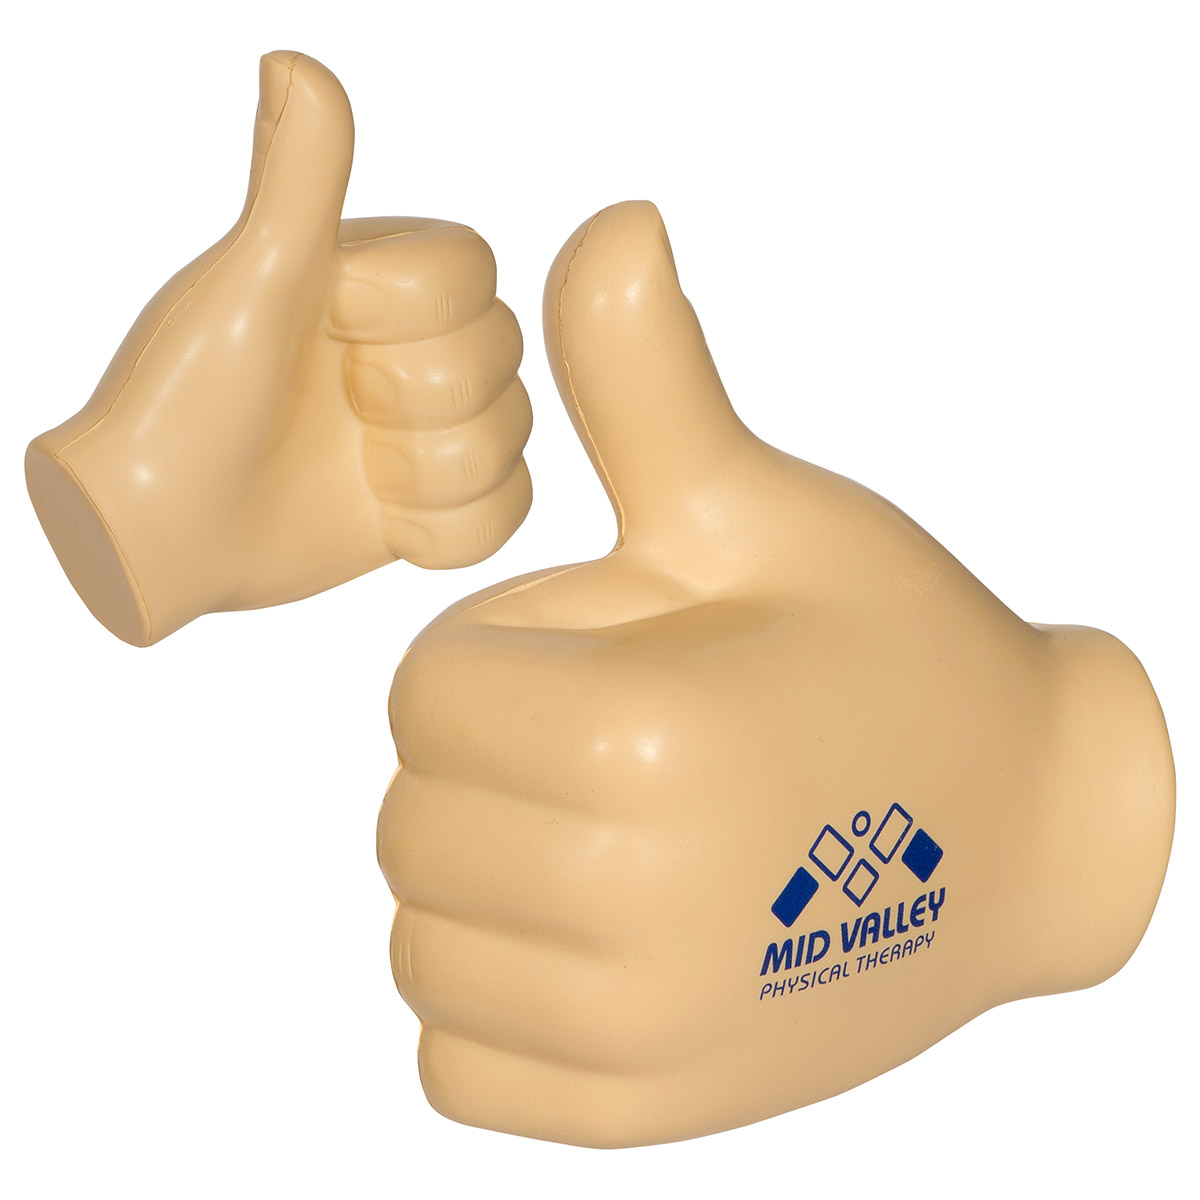 Hand Thumbs Up Stress Reliever, LAN-HT23 - 1 Colour Imprint